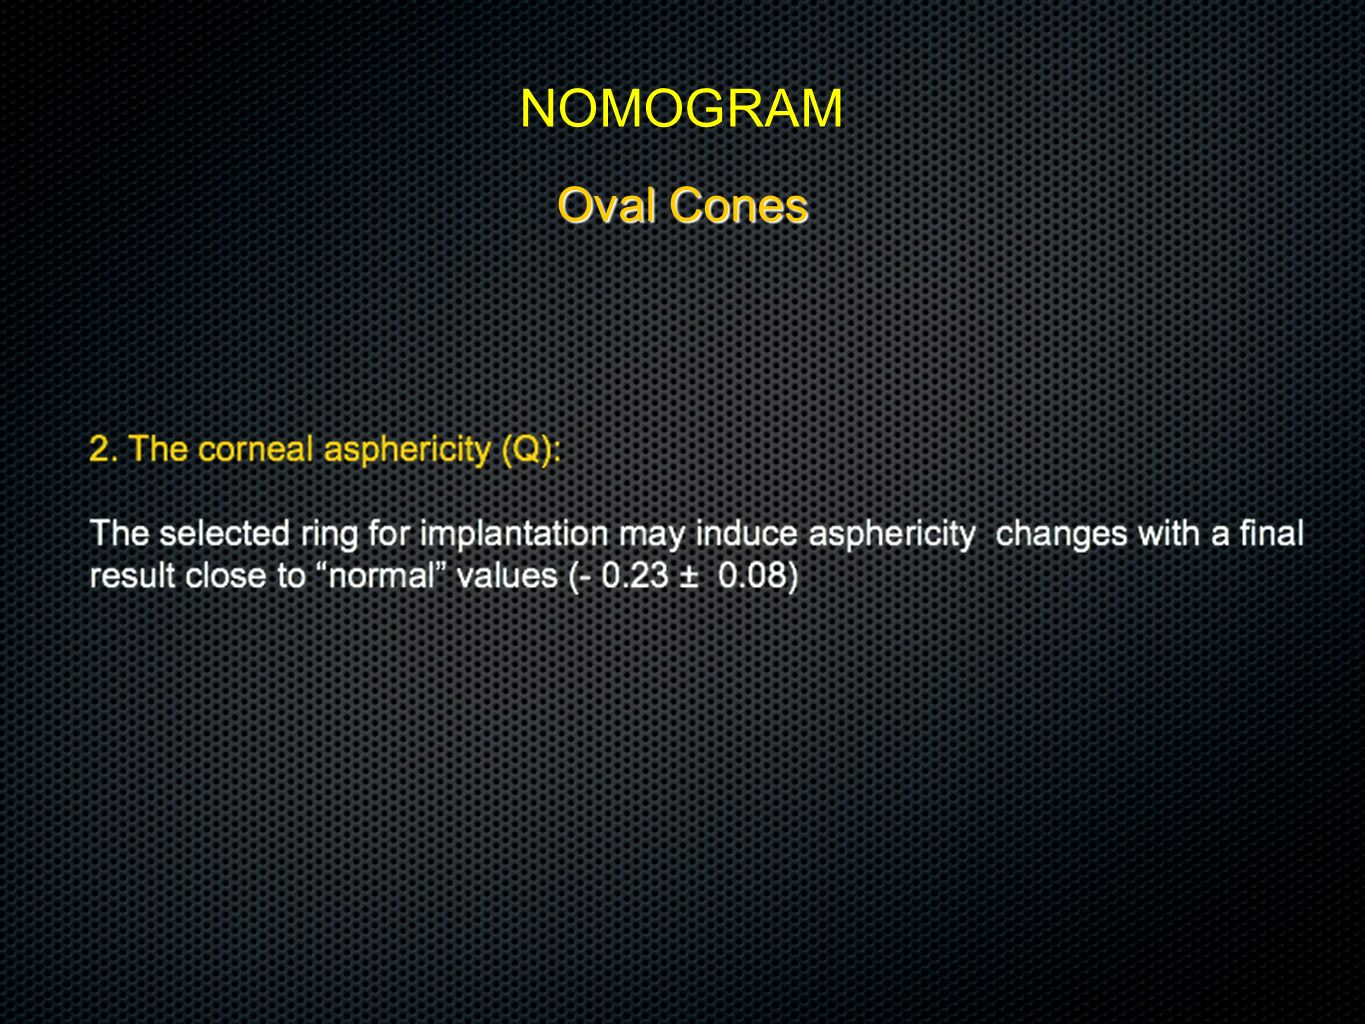 NOMOGRAM Oval Cones